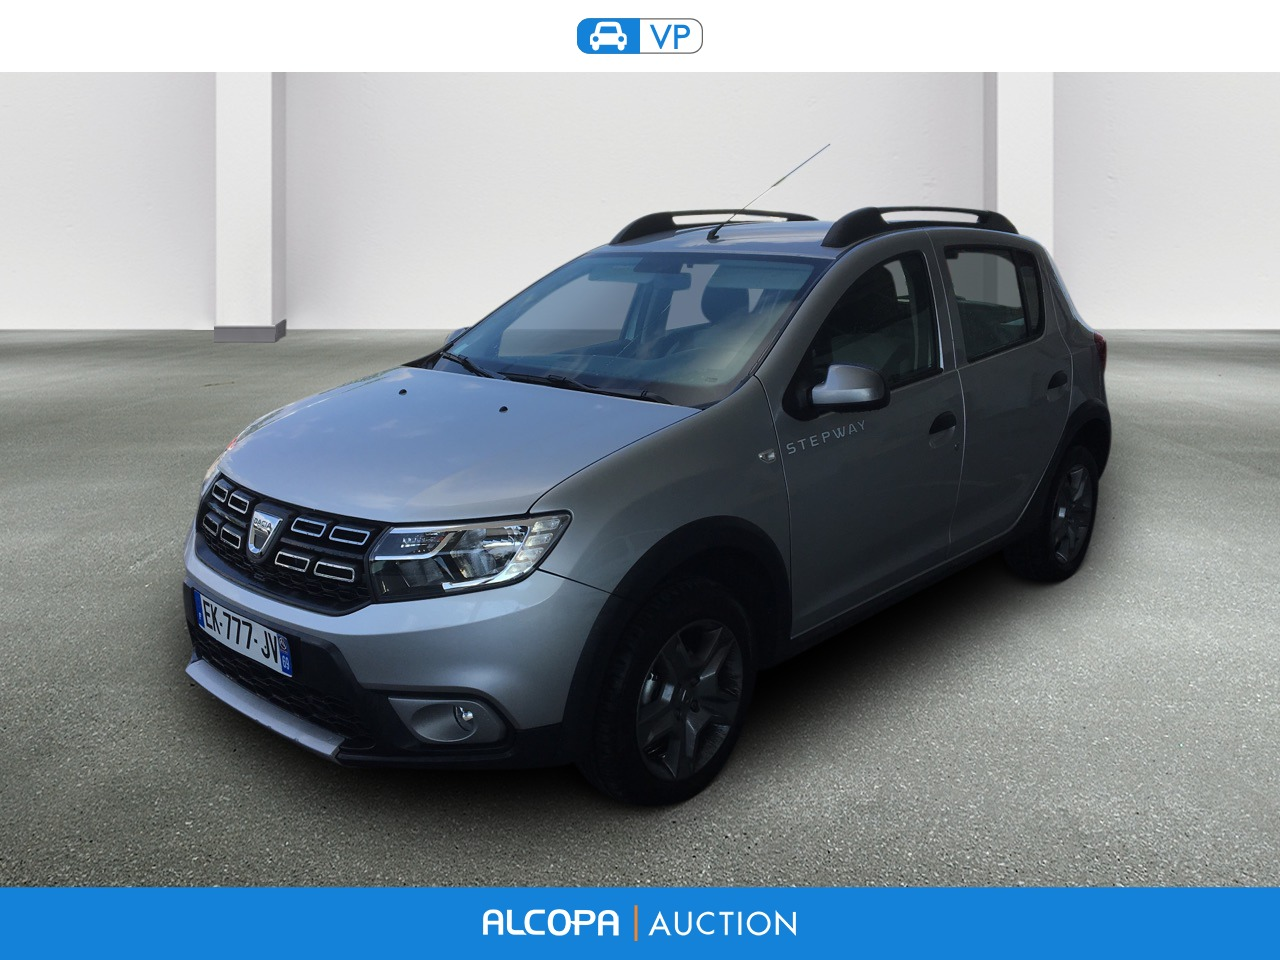 dacia sandero sandero tce 90 stepway easy r bva alcopa auction. Black Bedroom Furniture Sets. Home Design Ideas